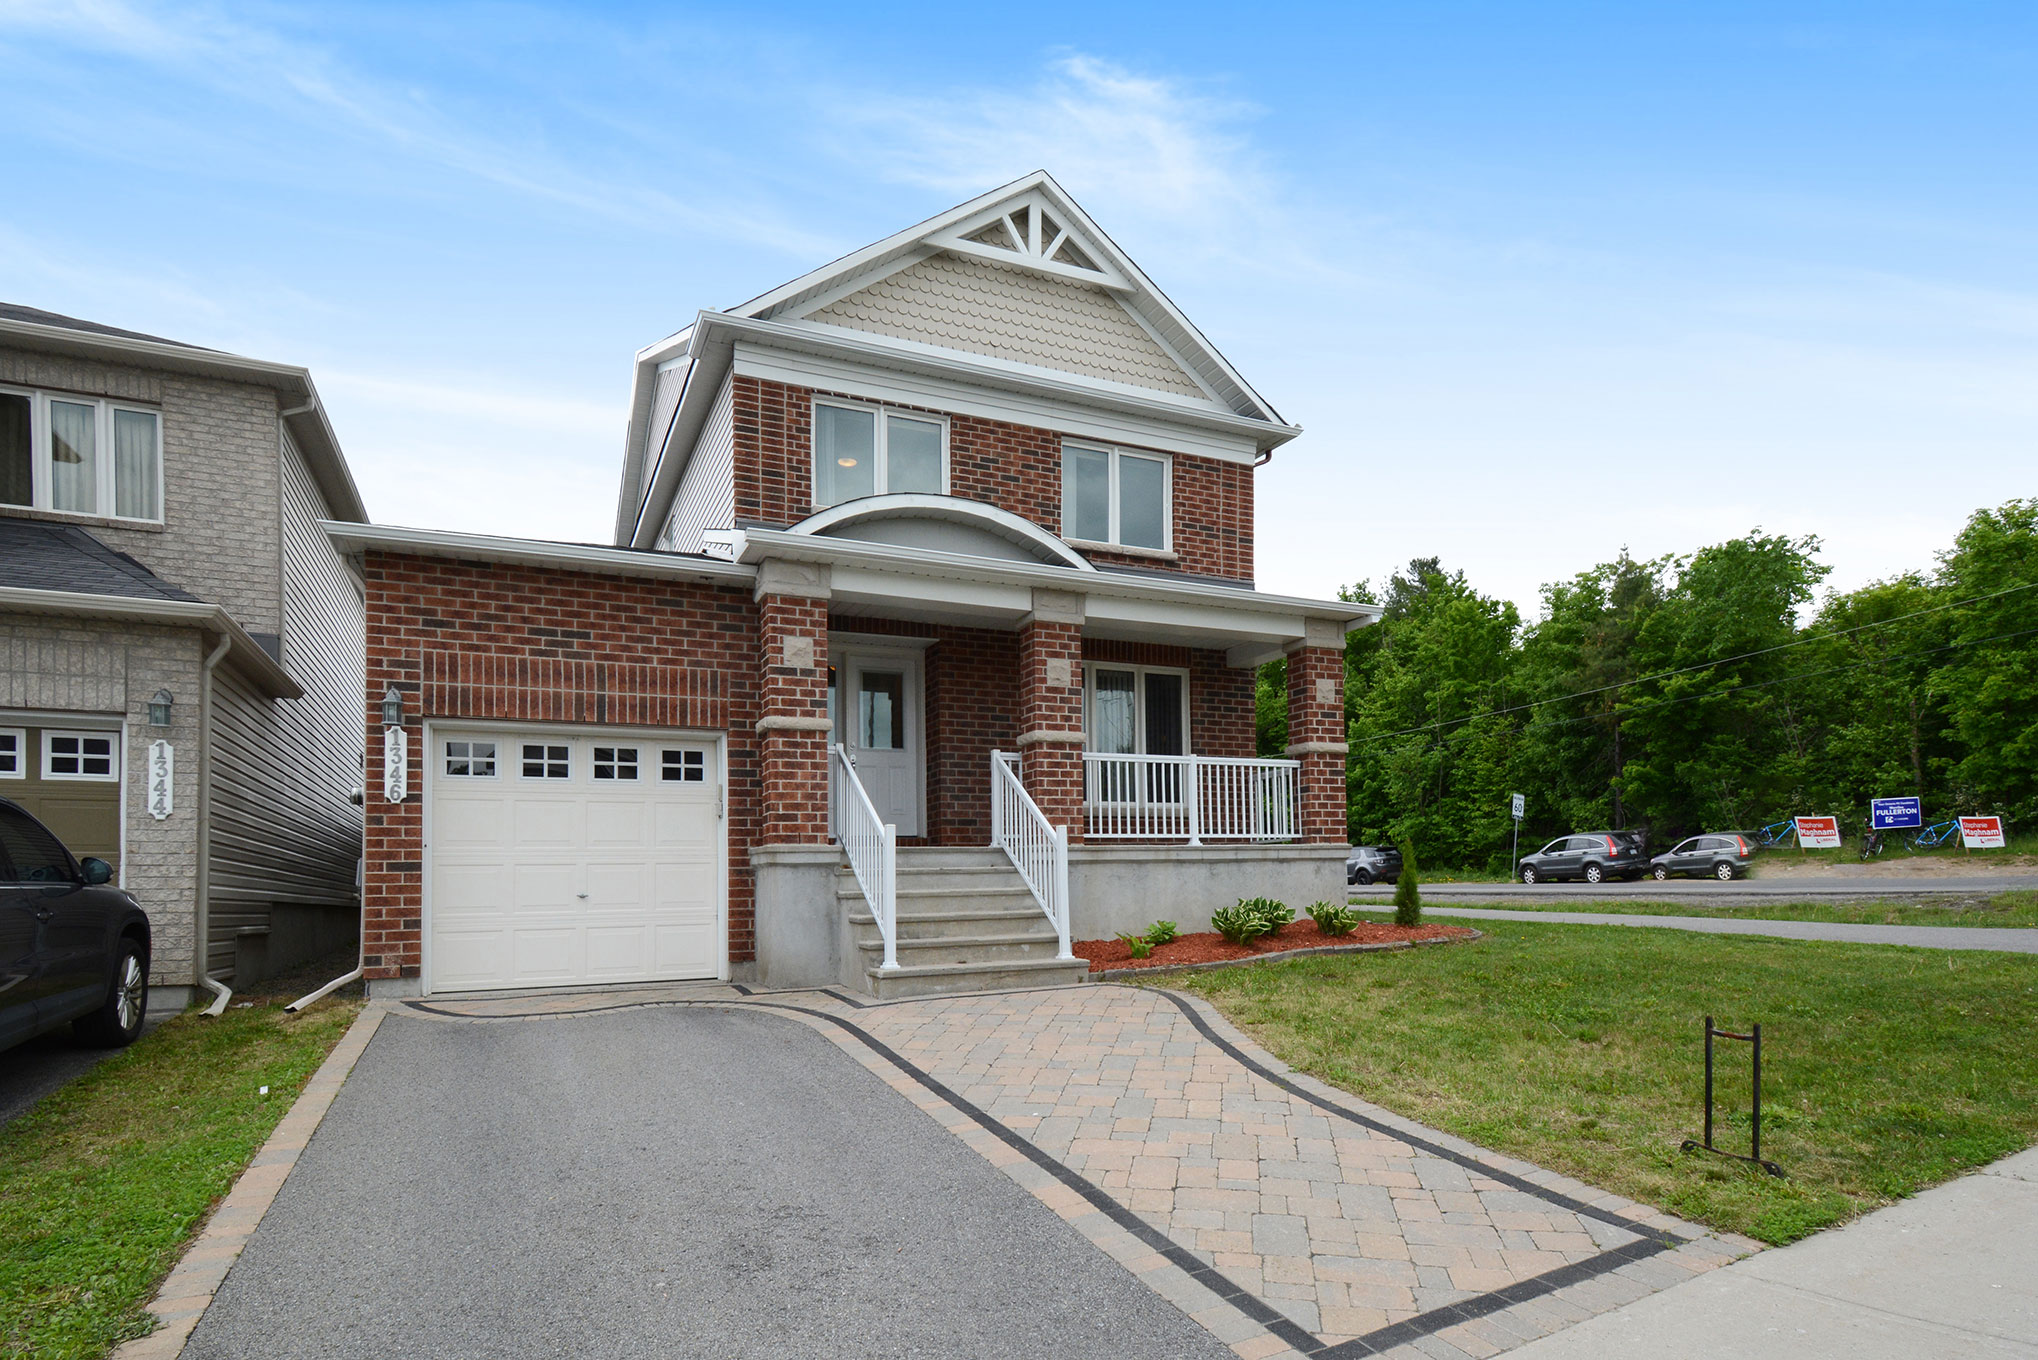 Stunning 3 Bedroom, 3 Bathroom home.  Updated and upgraded, turnkey and move in ready!